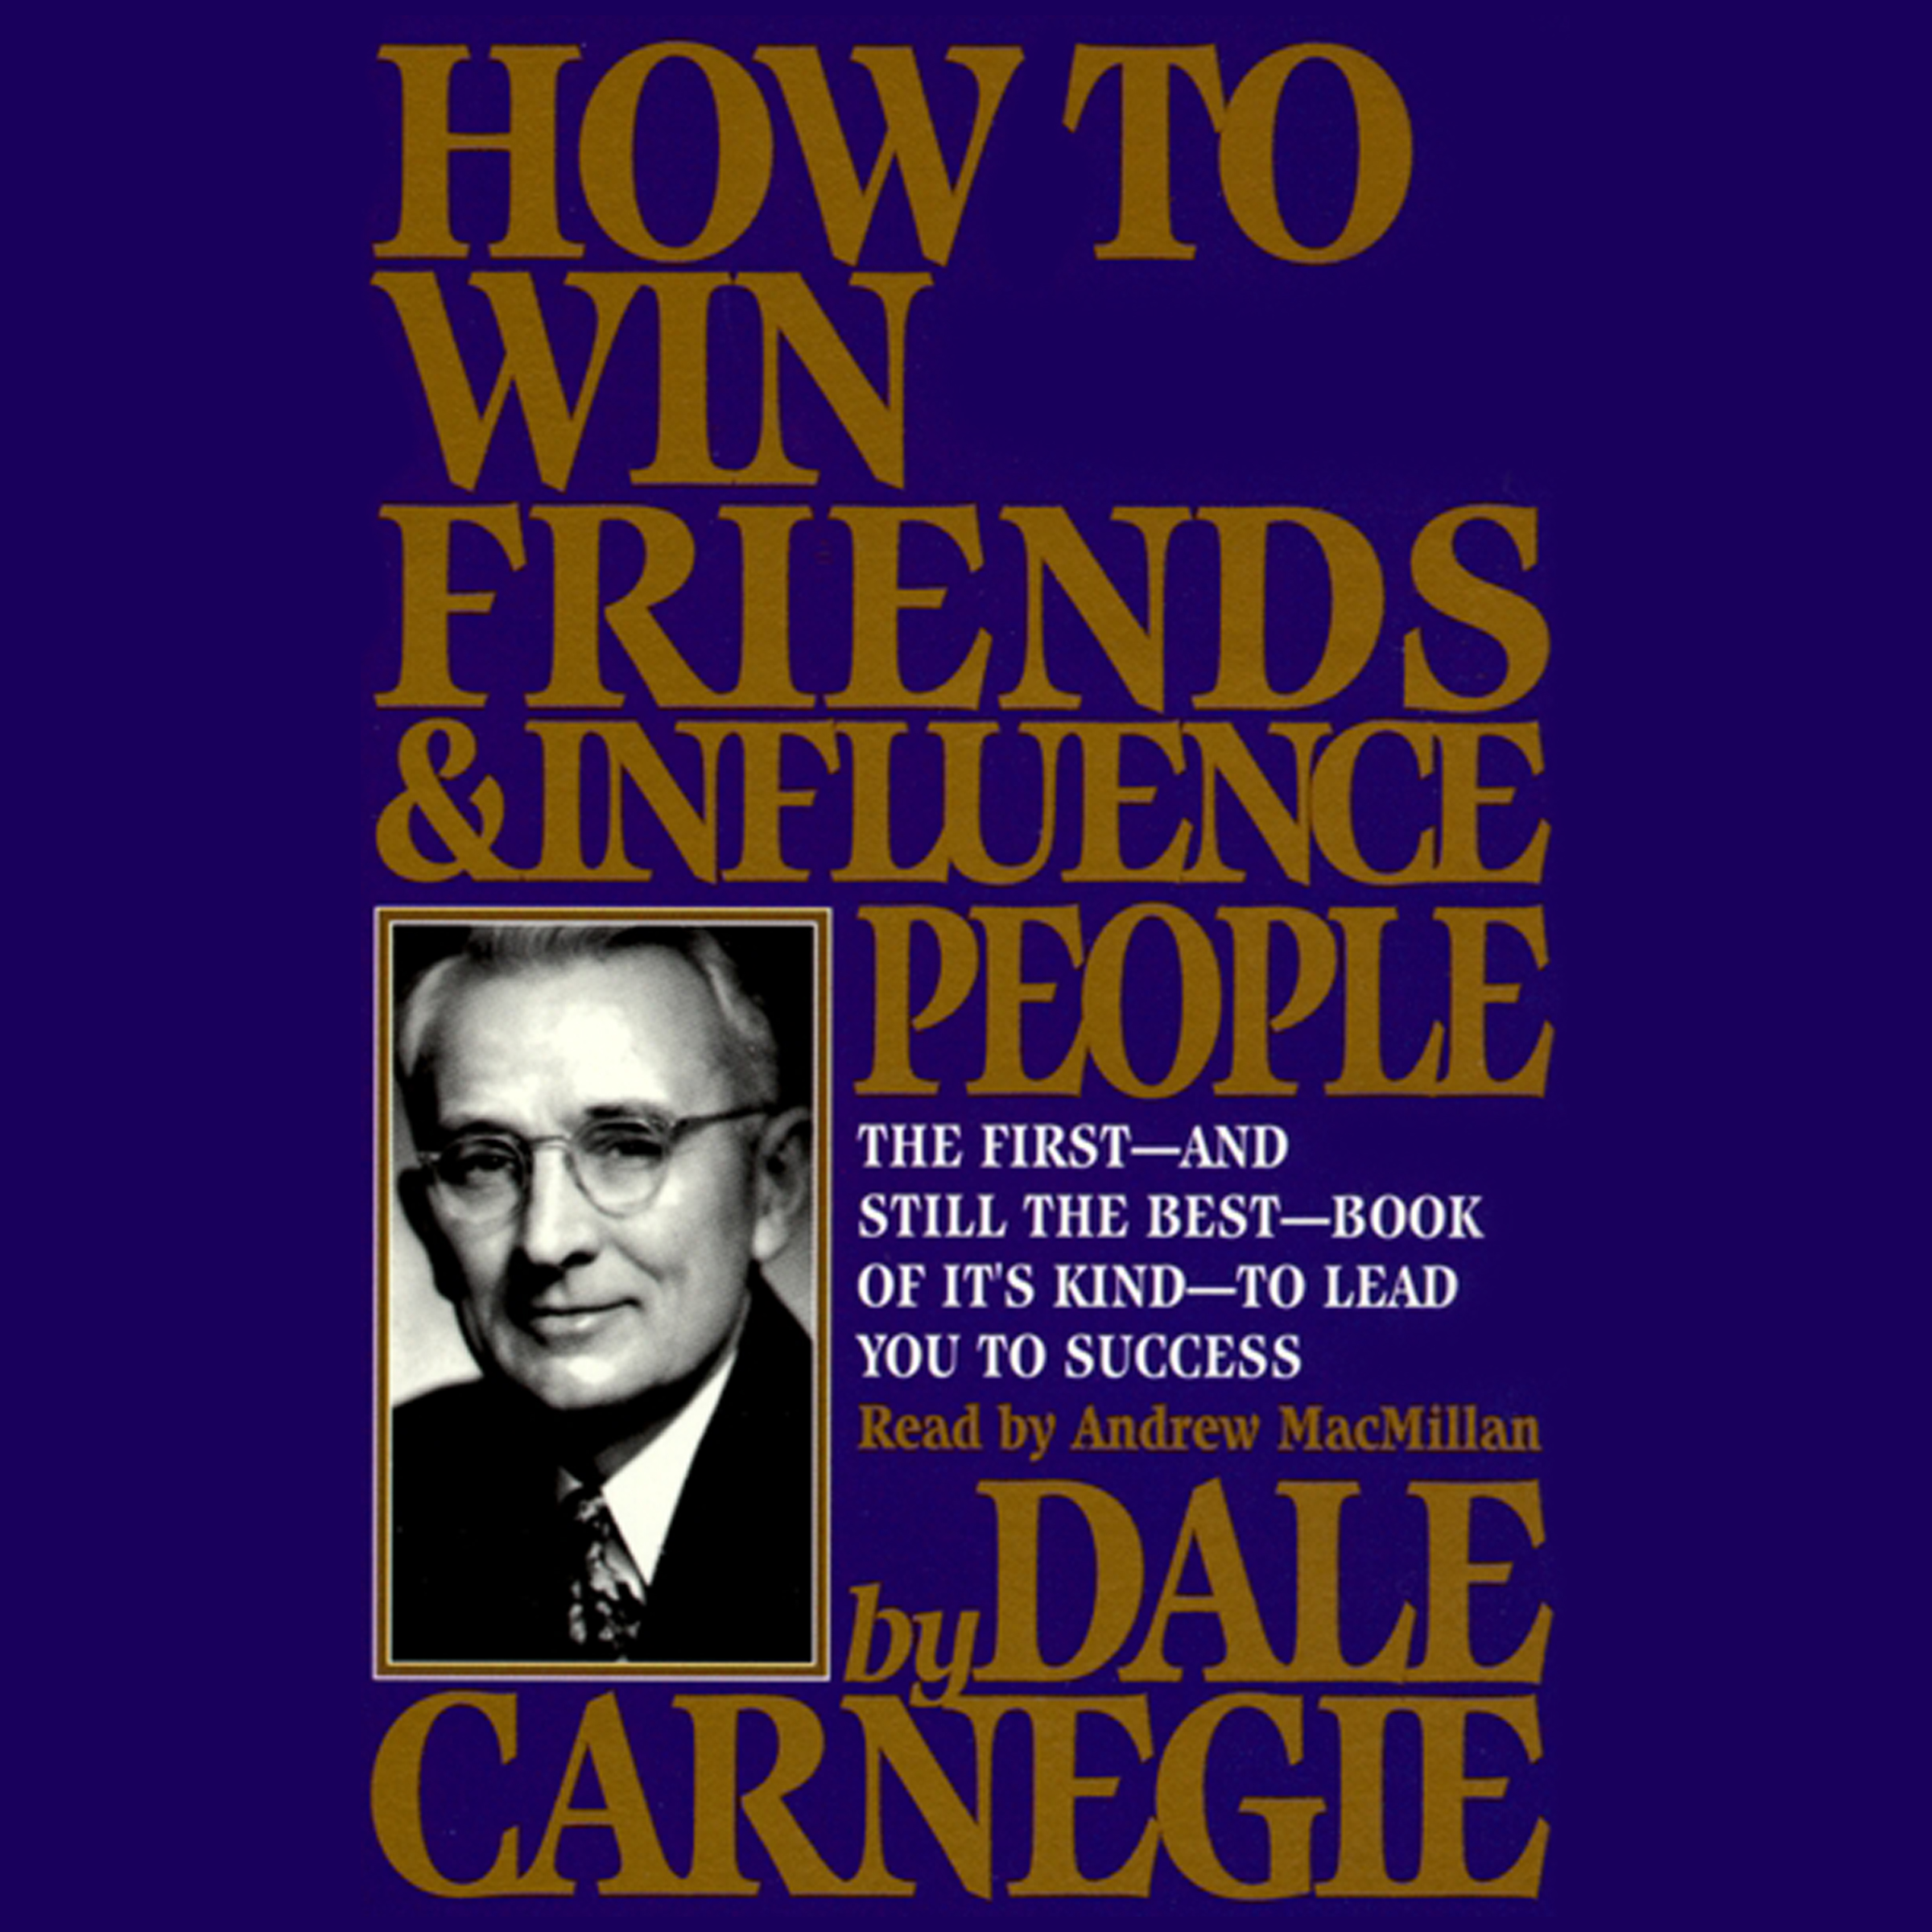 How To Win Friends And Influence People Audiobook by Dale